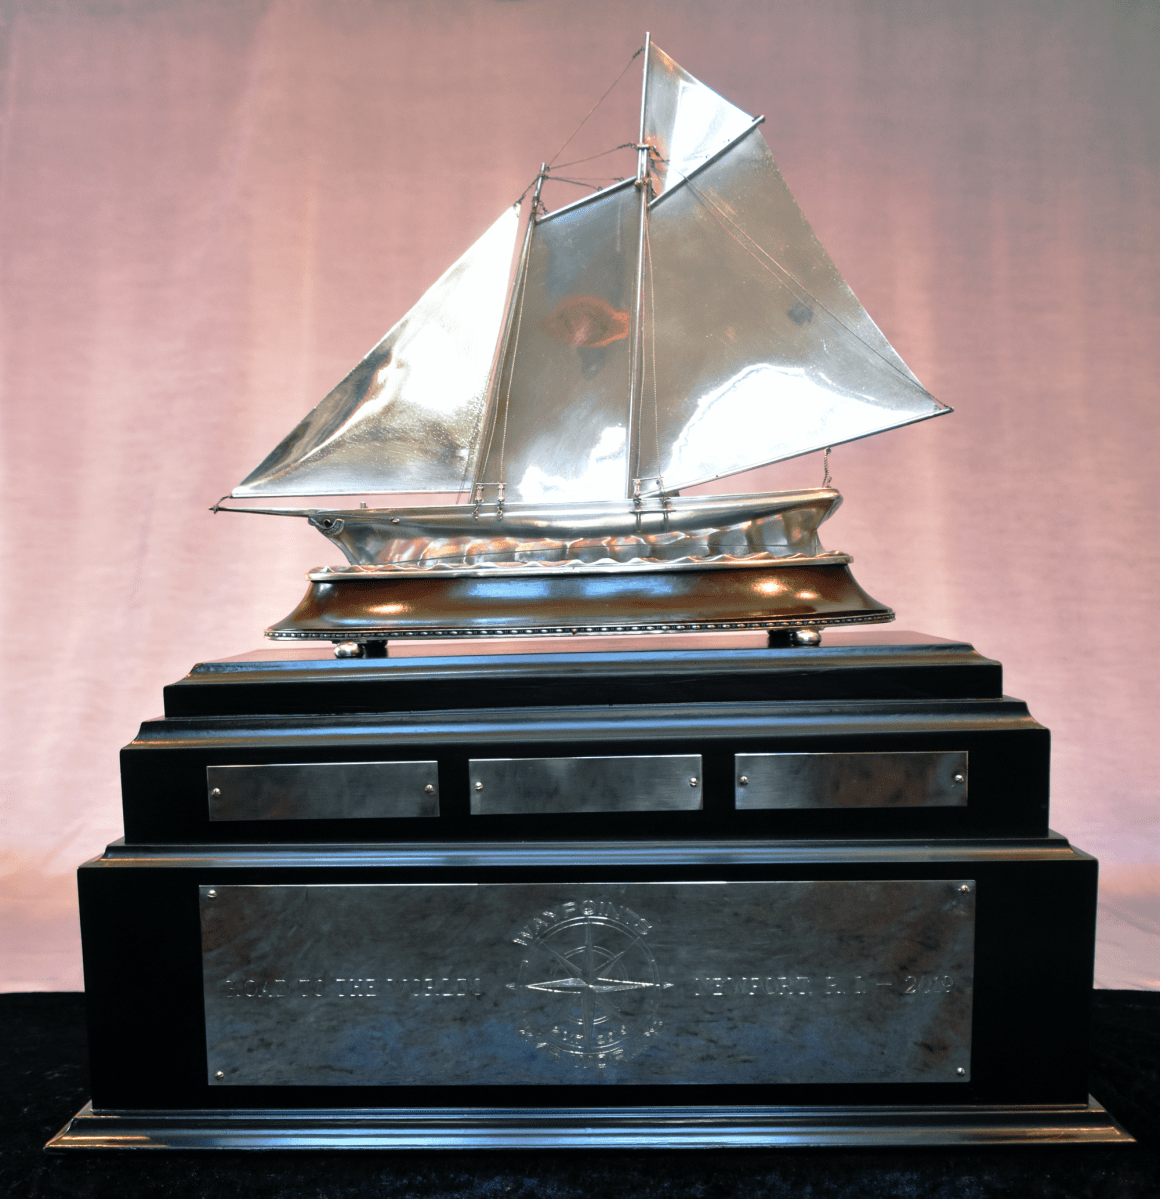 Waypoints to the Worlds Trophy, 12 Metre World Championship Trophy